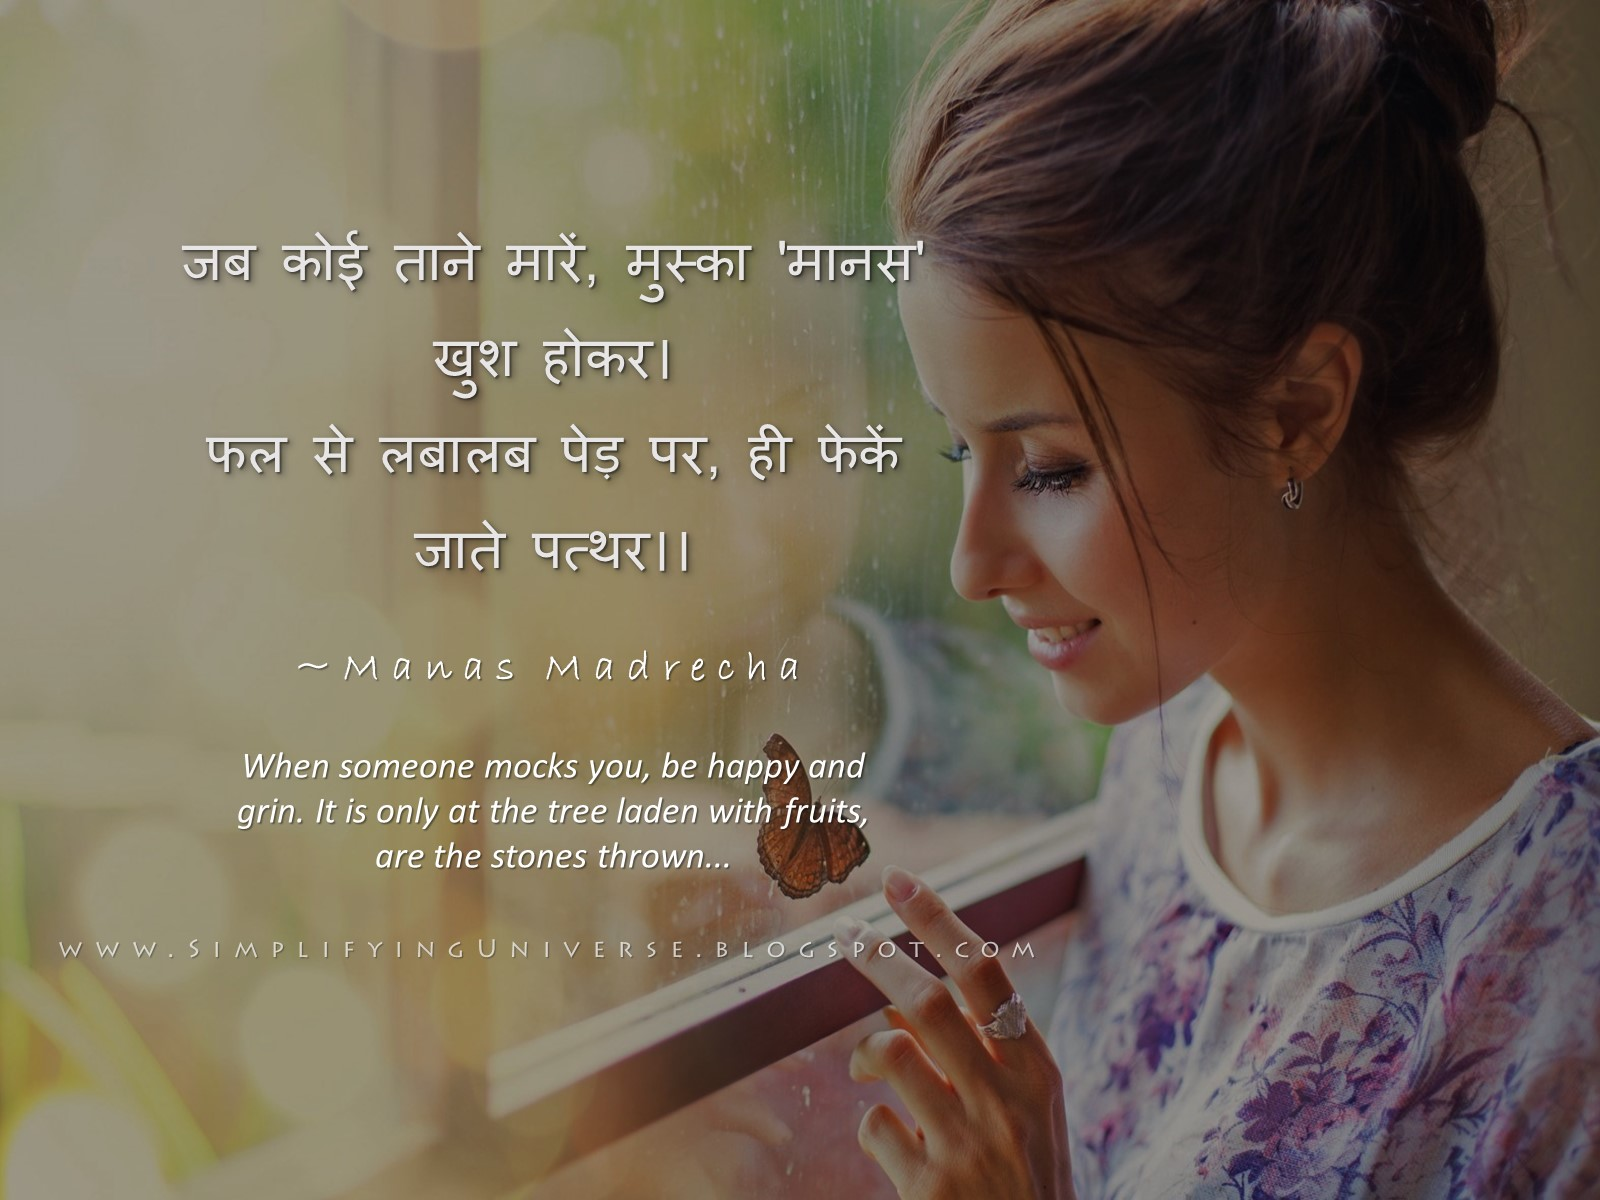 cute innocent woman playing with butterfly, woman window, girl in spring, manas madrecha, hindi poem on love criticism rumors, hindi quotes, simplifying universe, india mumbai blog, hindi self-help poet